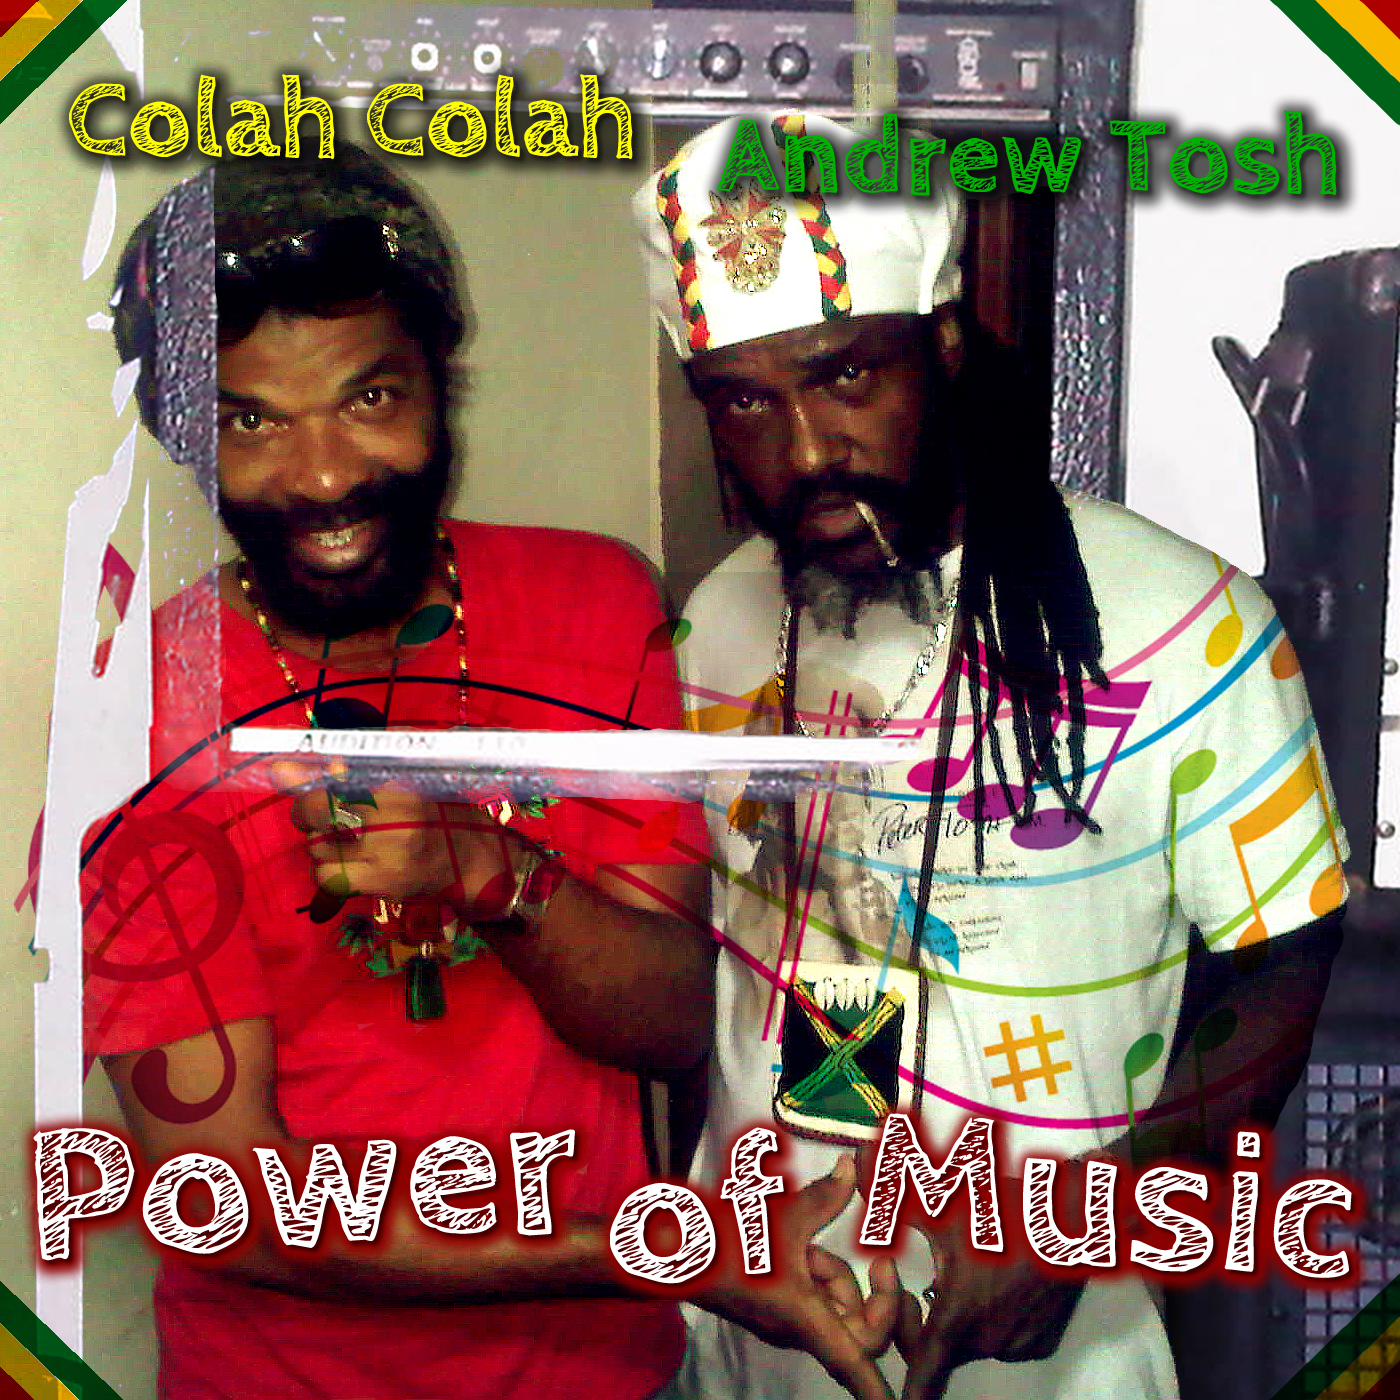 andrew tosh ft colah colah - power of music